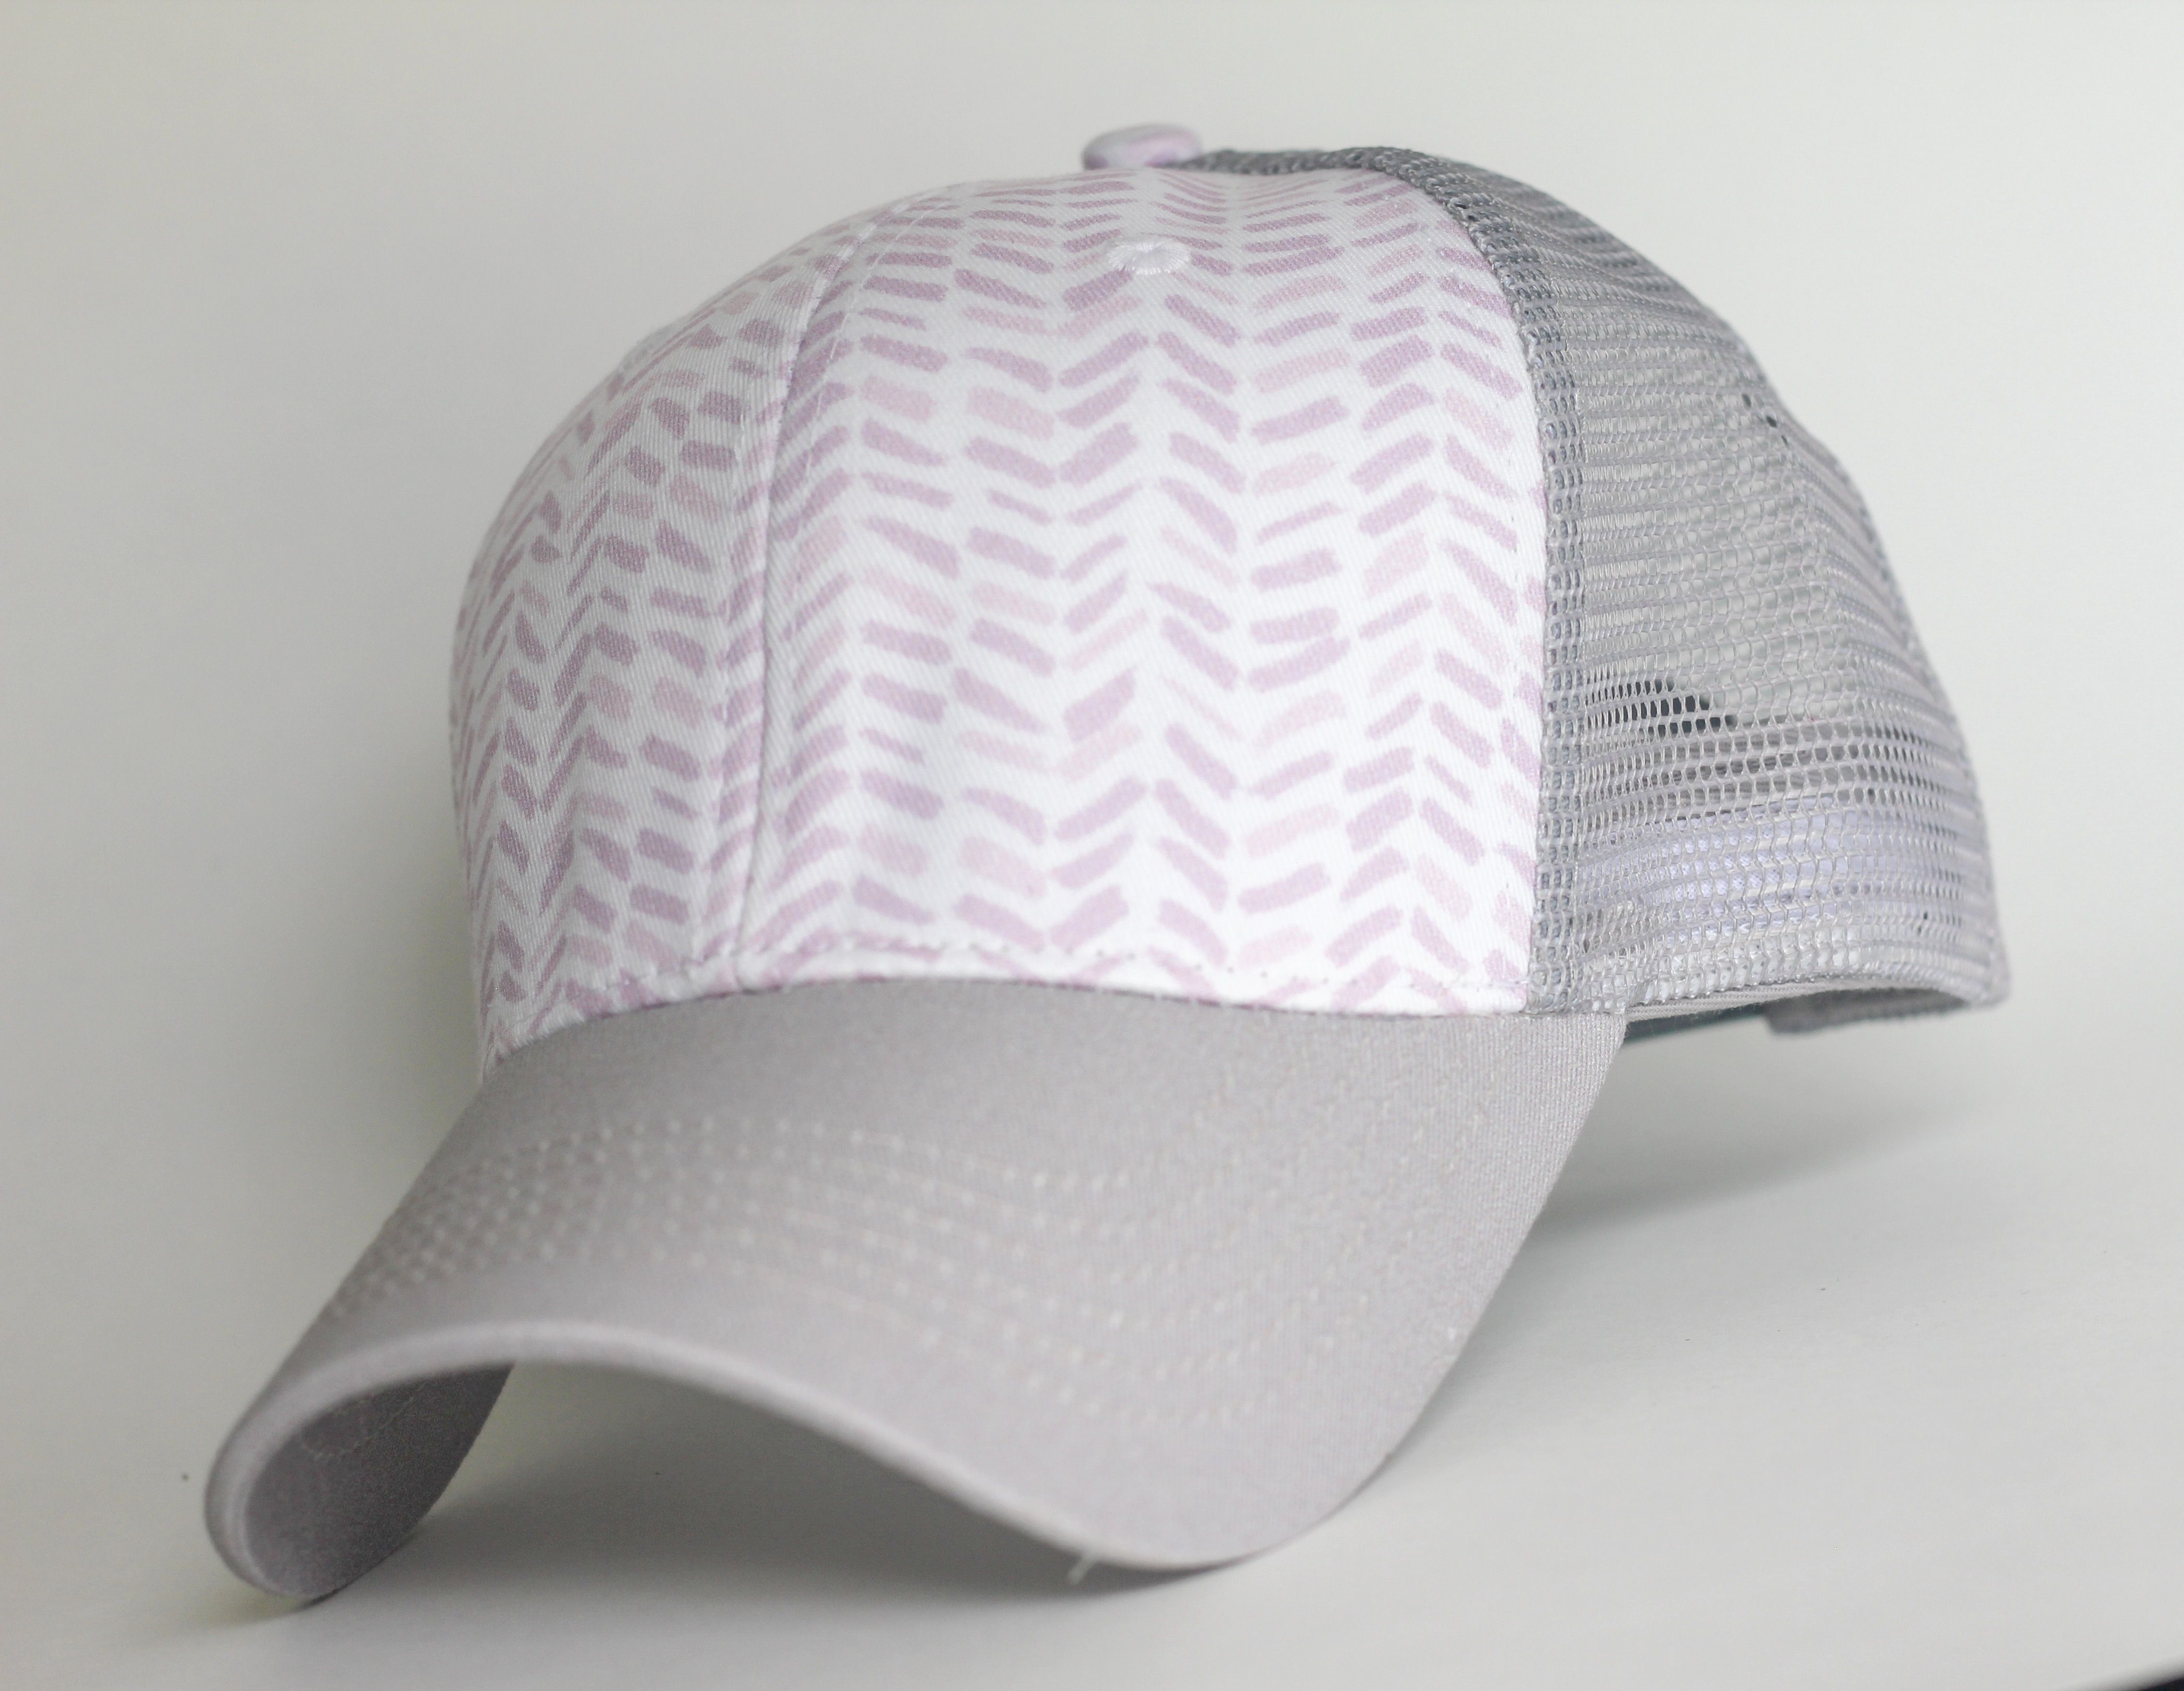 b1f6beb5b2716 Monterey – Wild Child Hat Co. A sweet and pretty lavender and soft ...